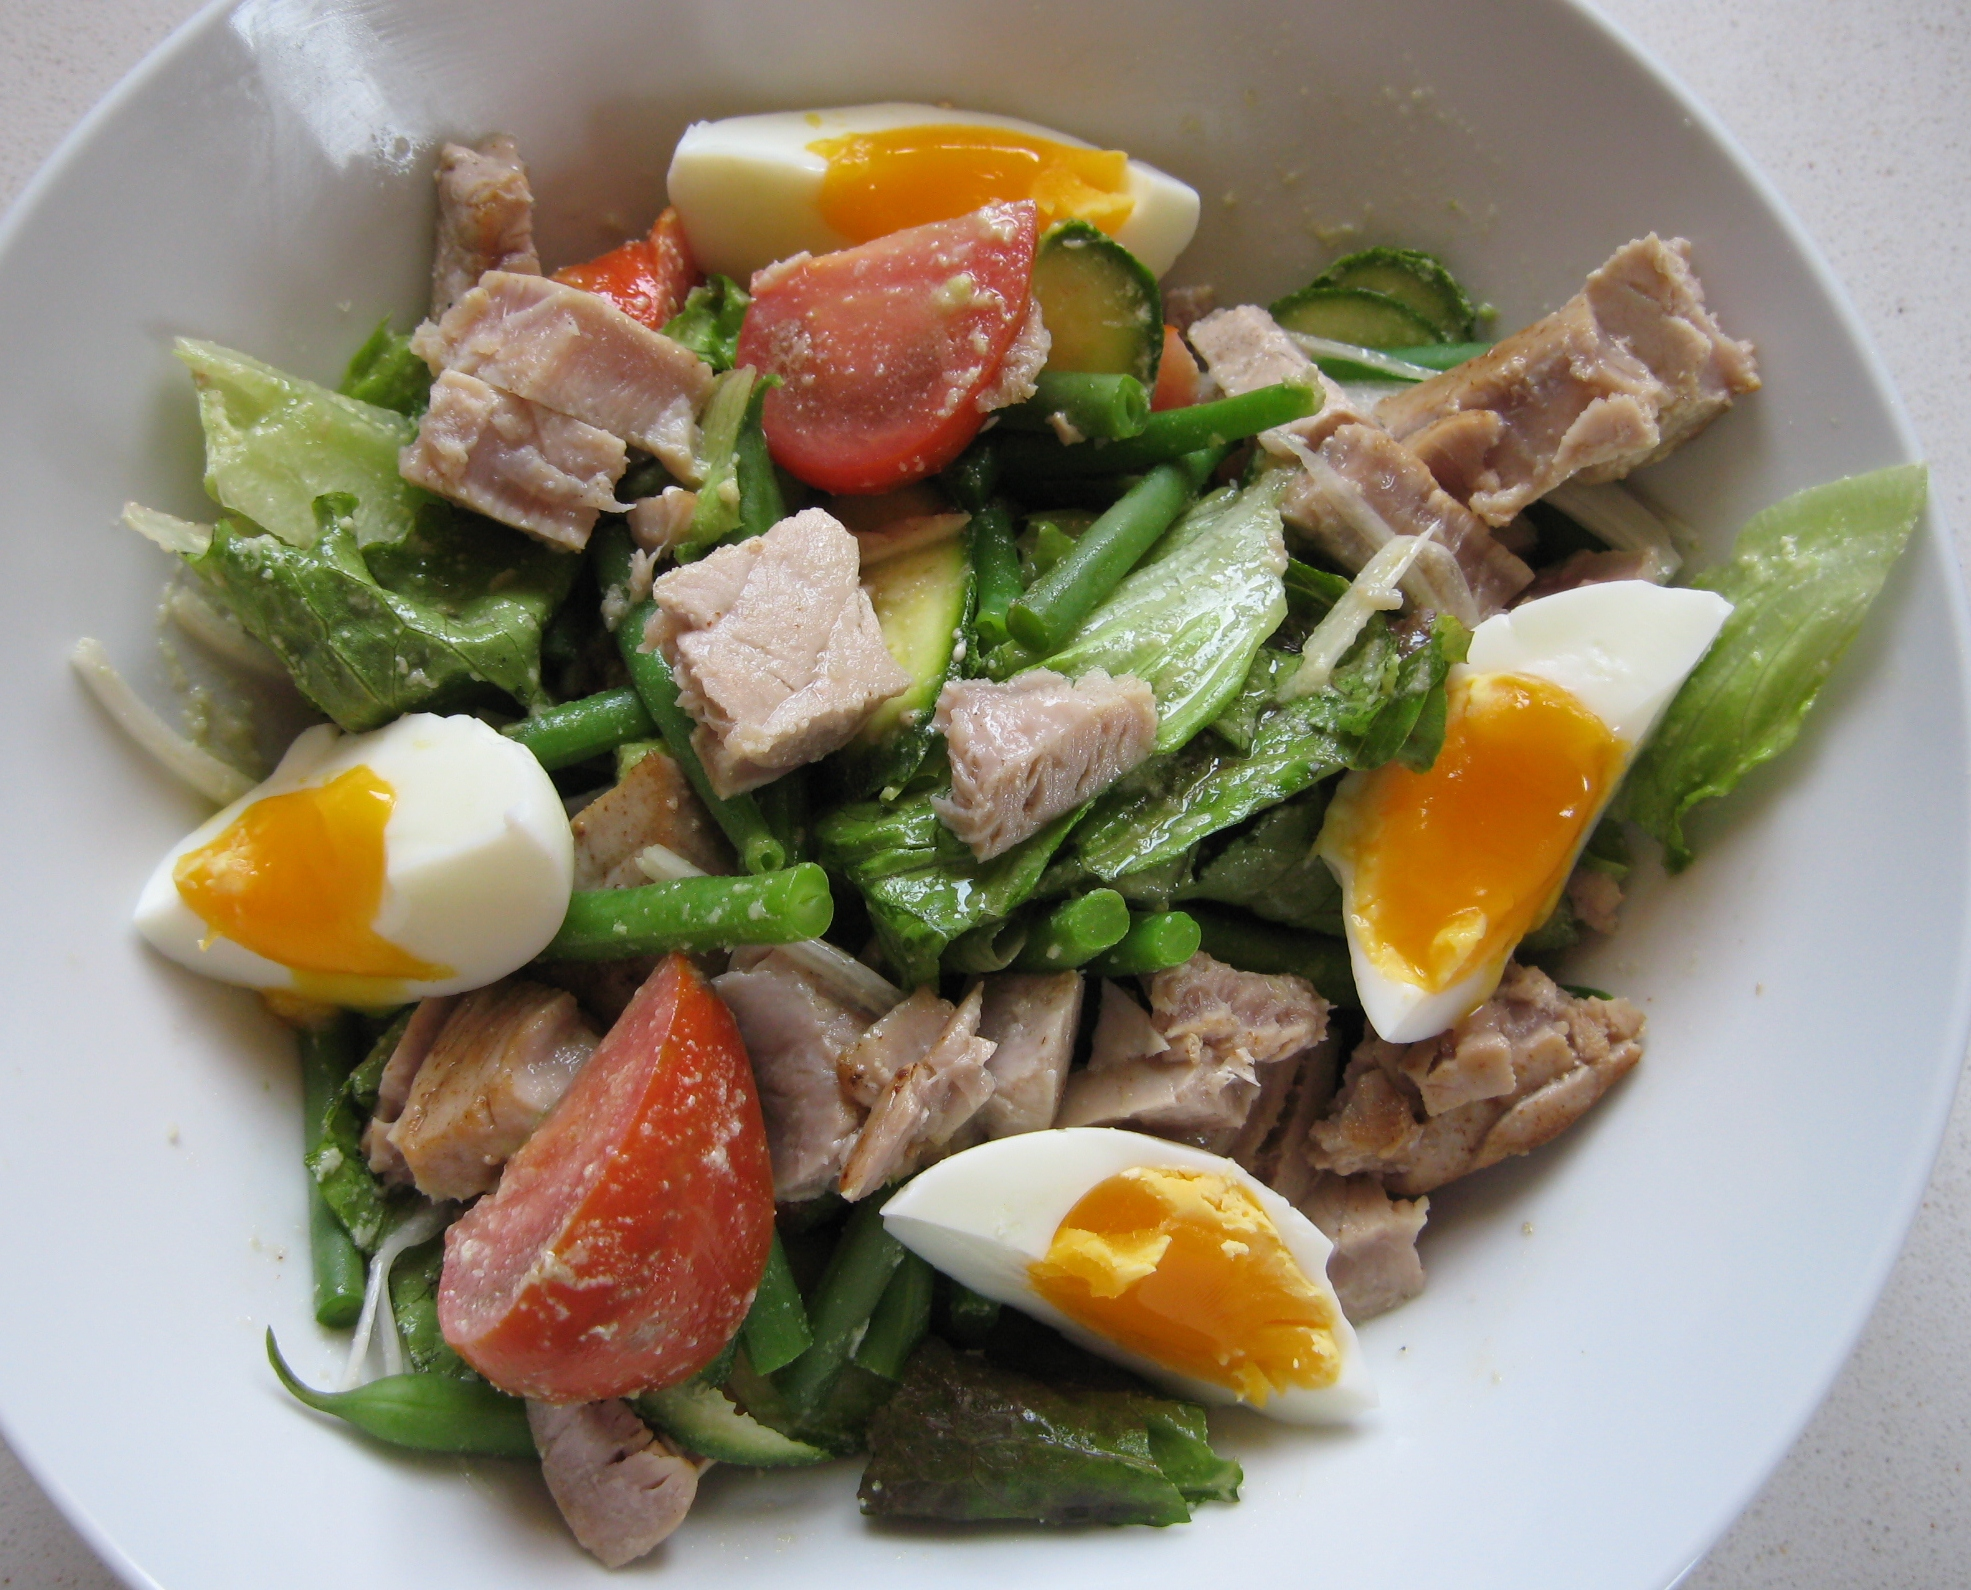 ... garden salad with spring salad with new spring salad with new